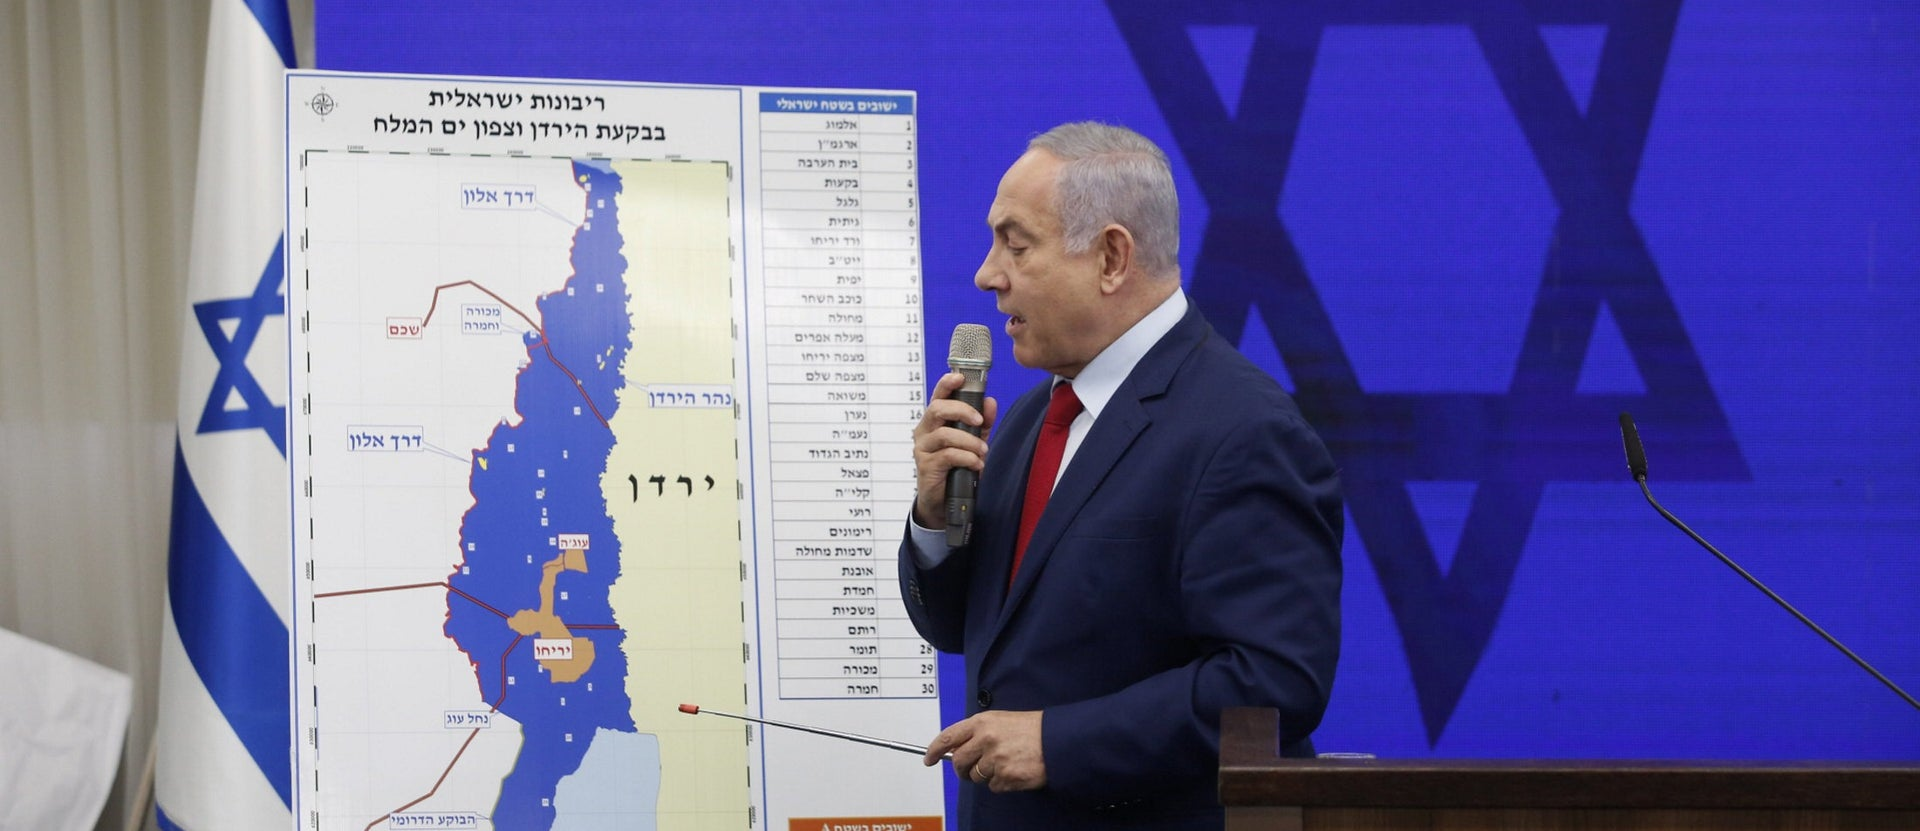 Prime Minister Benjamin Netanyahu presenting his plan for Israel to annex the Jordan Valley if he is reelected, September 10, 2019.